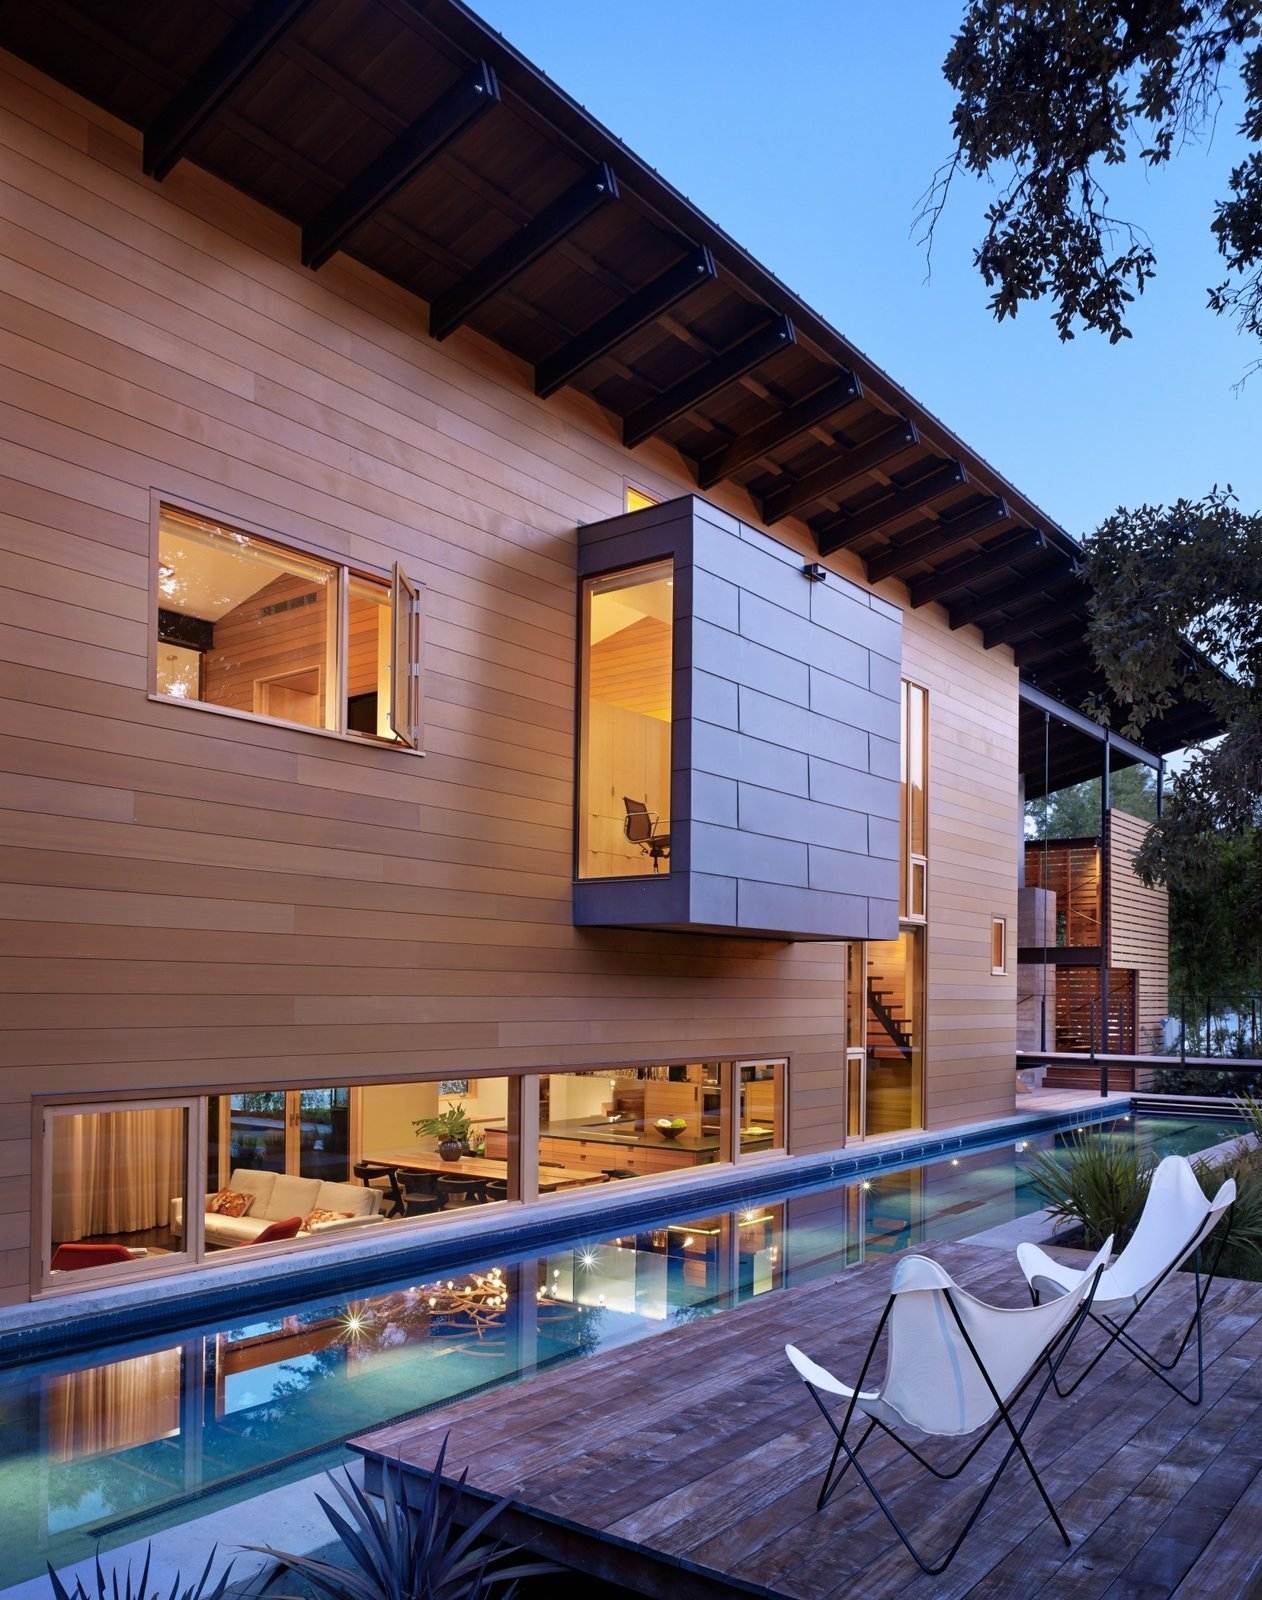 "Large, Wood, Small, Back Yard, Exterior, House, and Wood ""Exposing the craft and detail of the materials was a key part of the design,"" Flato notes. The texture of the house, he says, can be observed in the concrete retaining wall for the lap pool.  Exterior Wood Wood Photos from Hog Pen Creek"